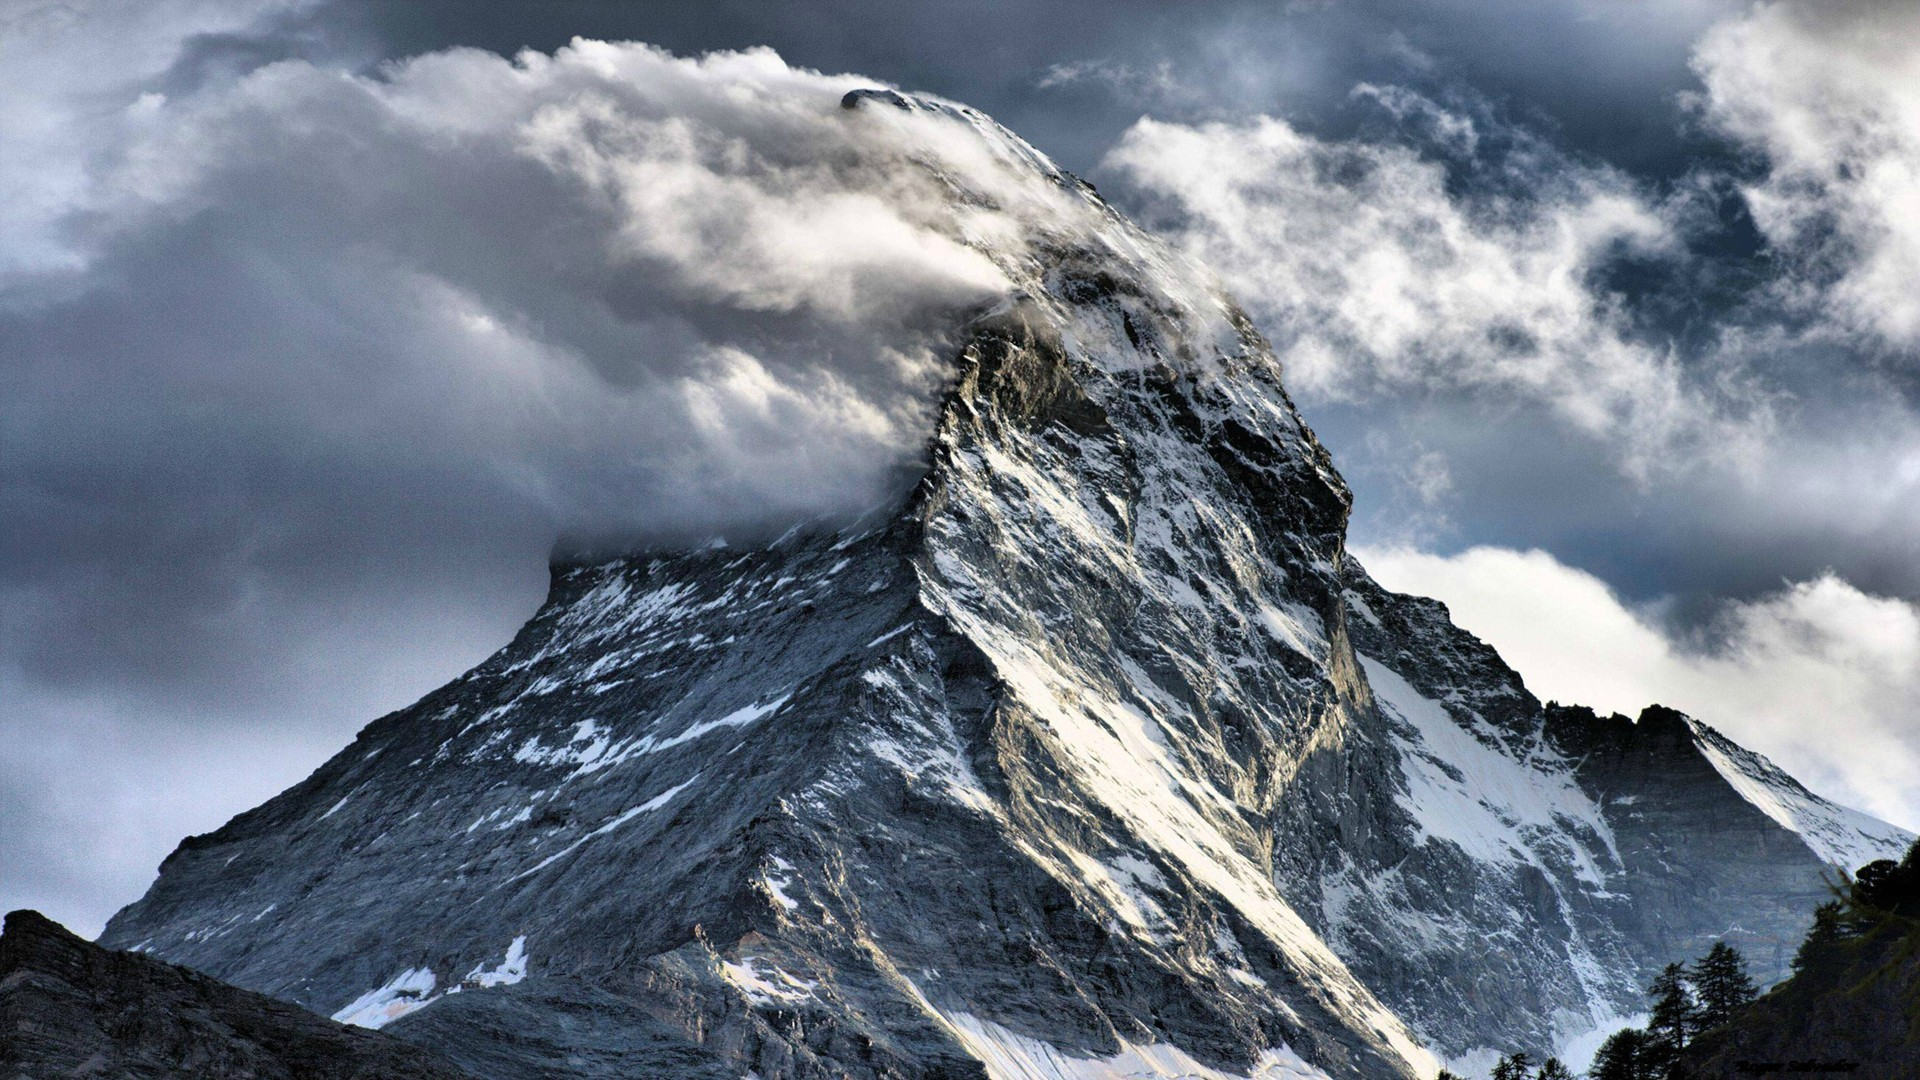 matterhorn wallpaper background